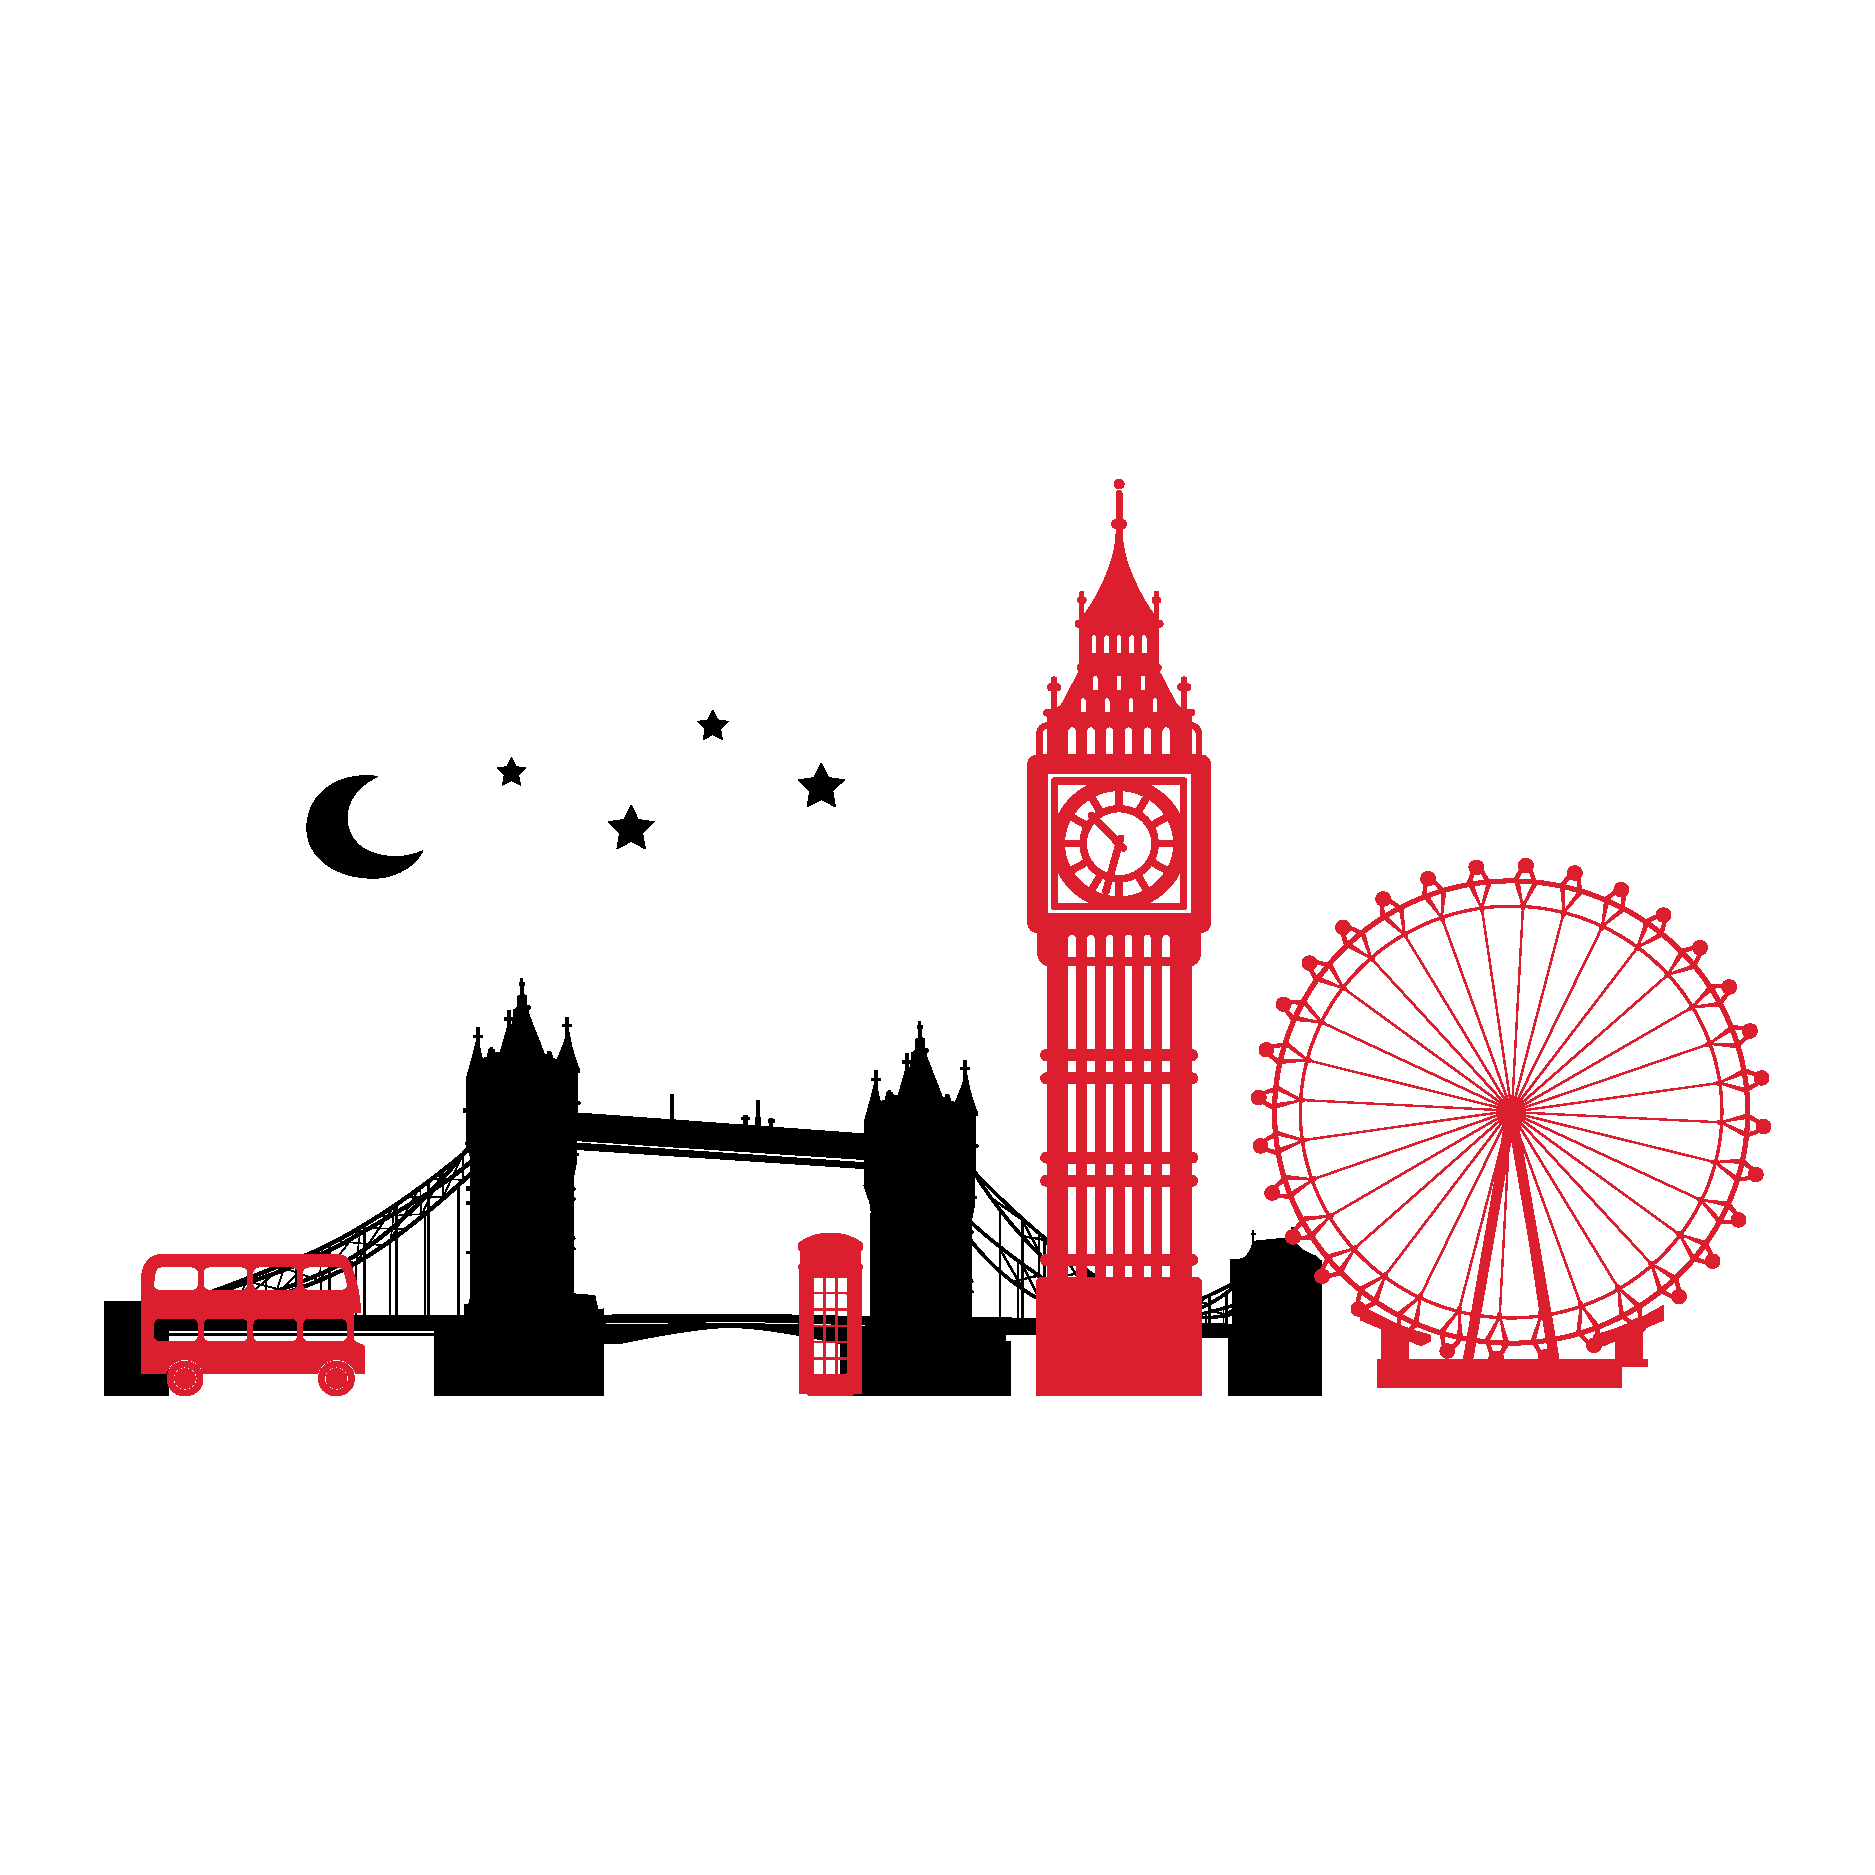 Line Drawing Tattoos London : London skyline tattoos google search